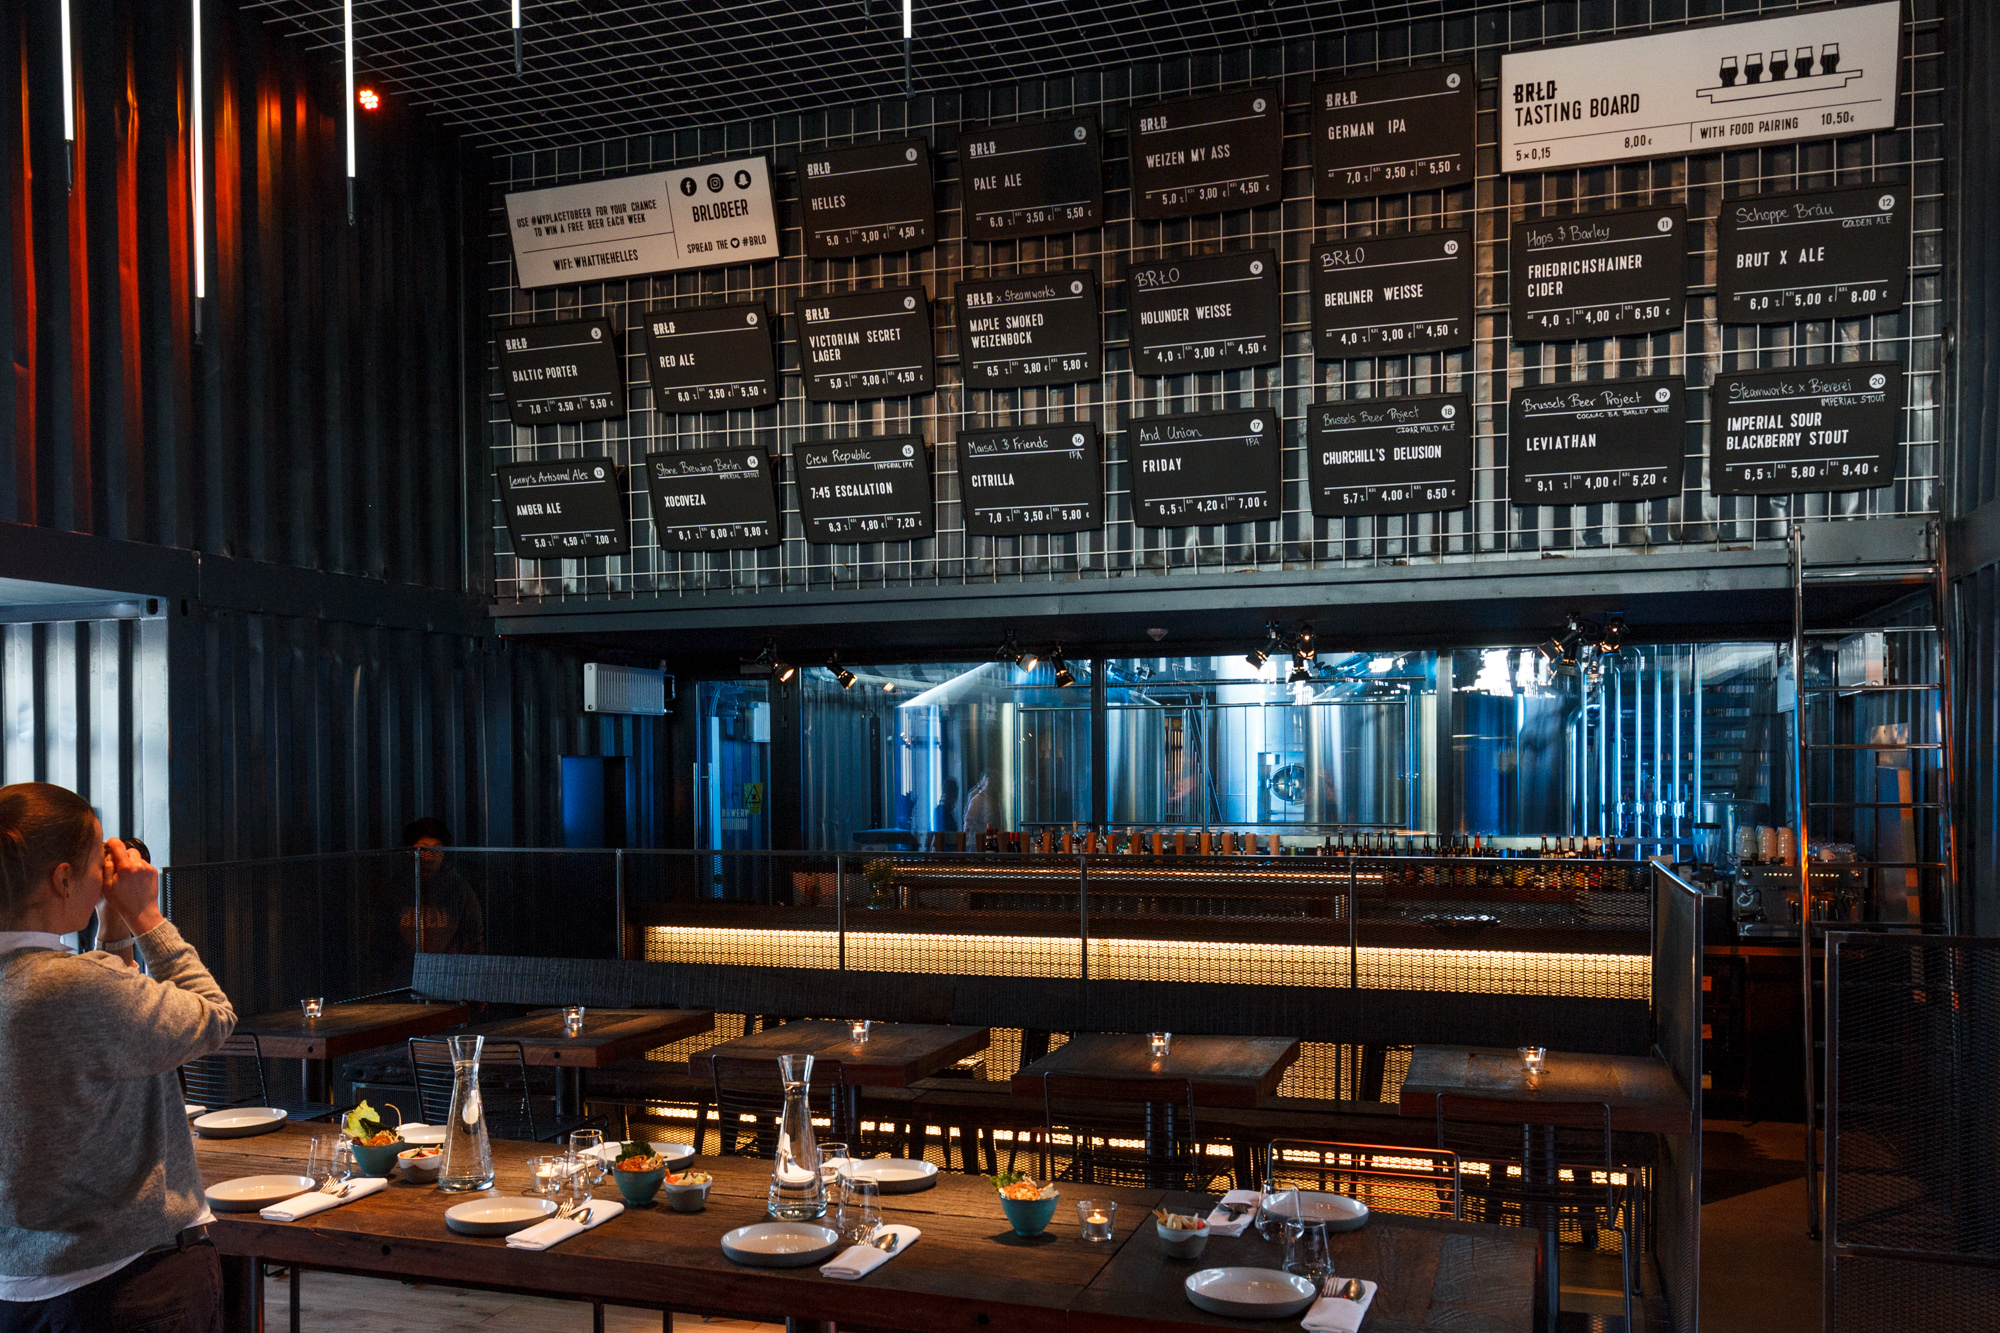 The bar and beer selection at BRLO Brwhouse - a craft beer brewery, bar, restaurant and beer garden and the edge of Park am Gleisdreieck in Berlin